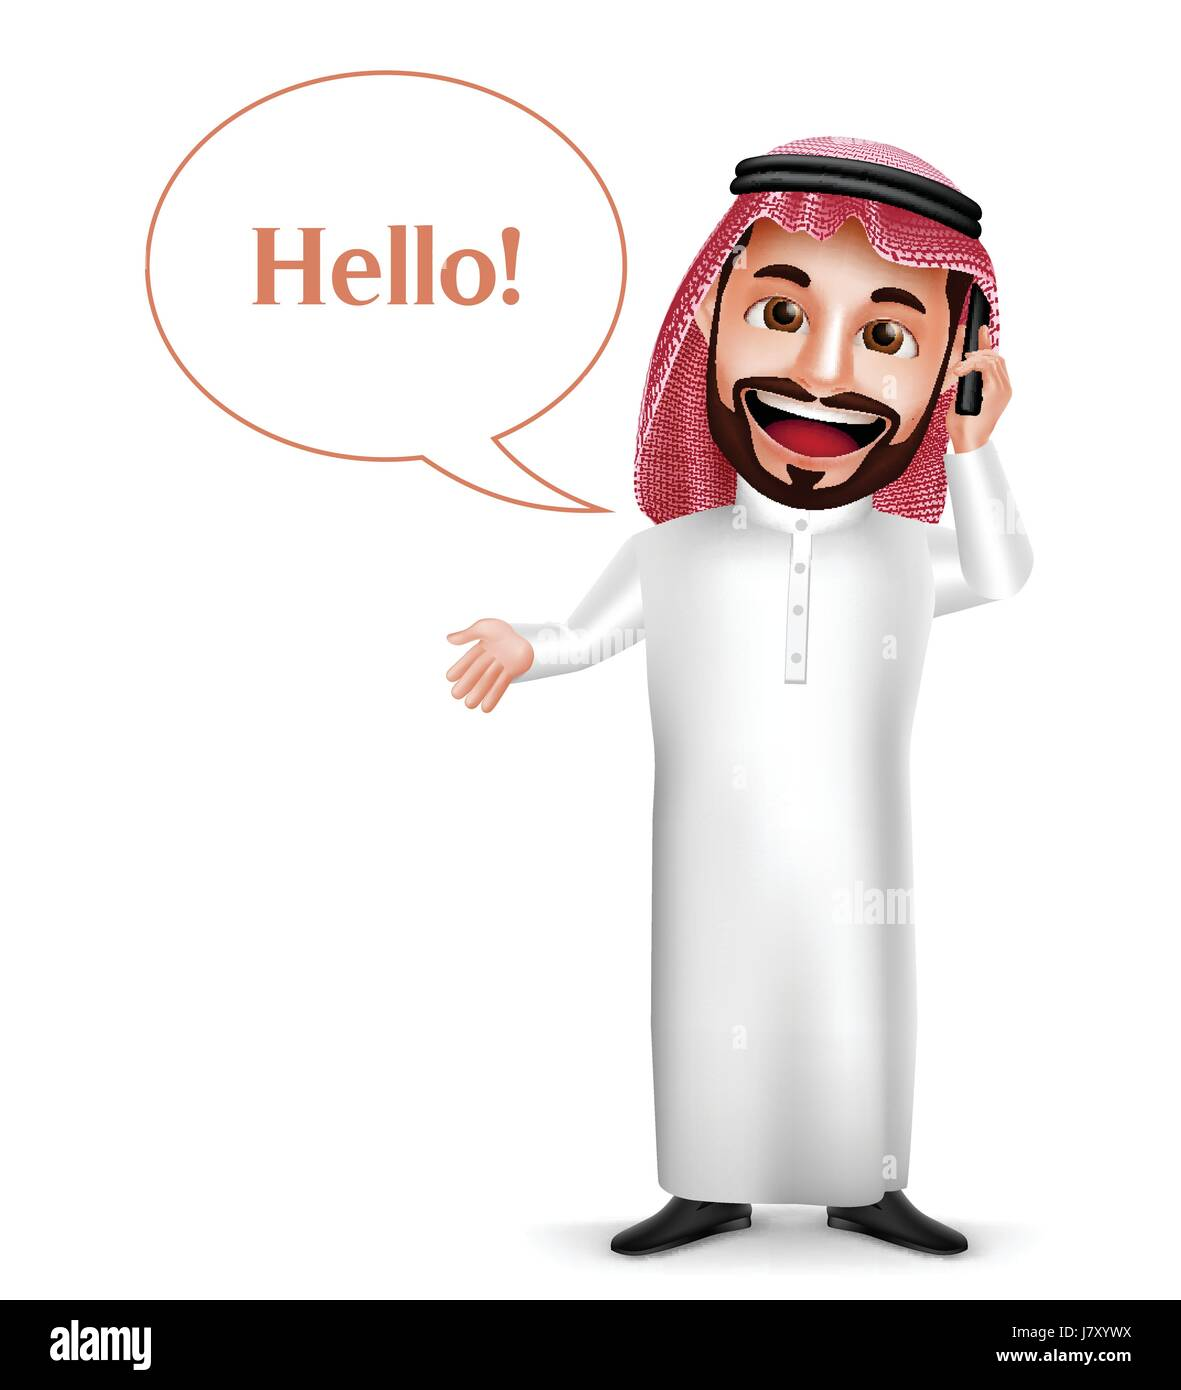 Saudi Arab man vector character holding mobile phone calling with hello speech bubbles isolated in white background. - Stock Image